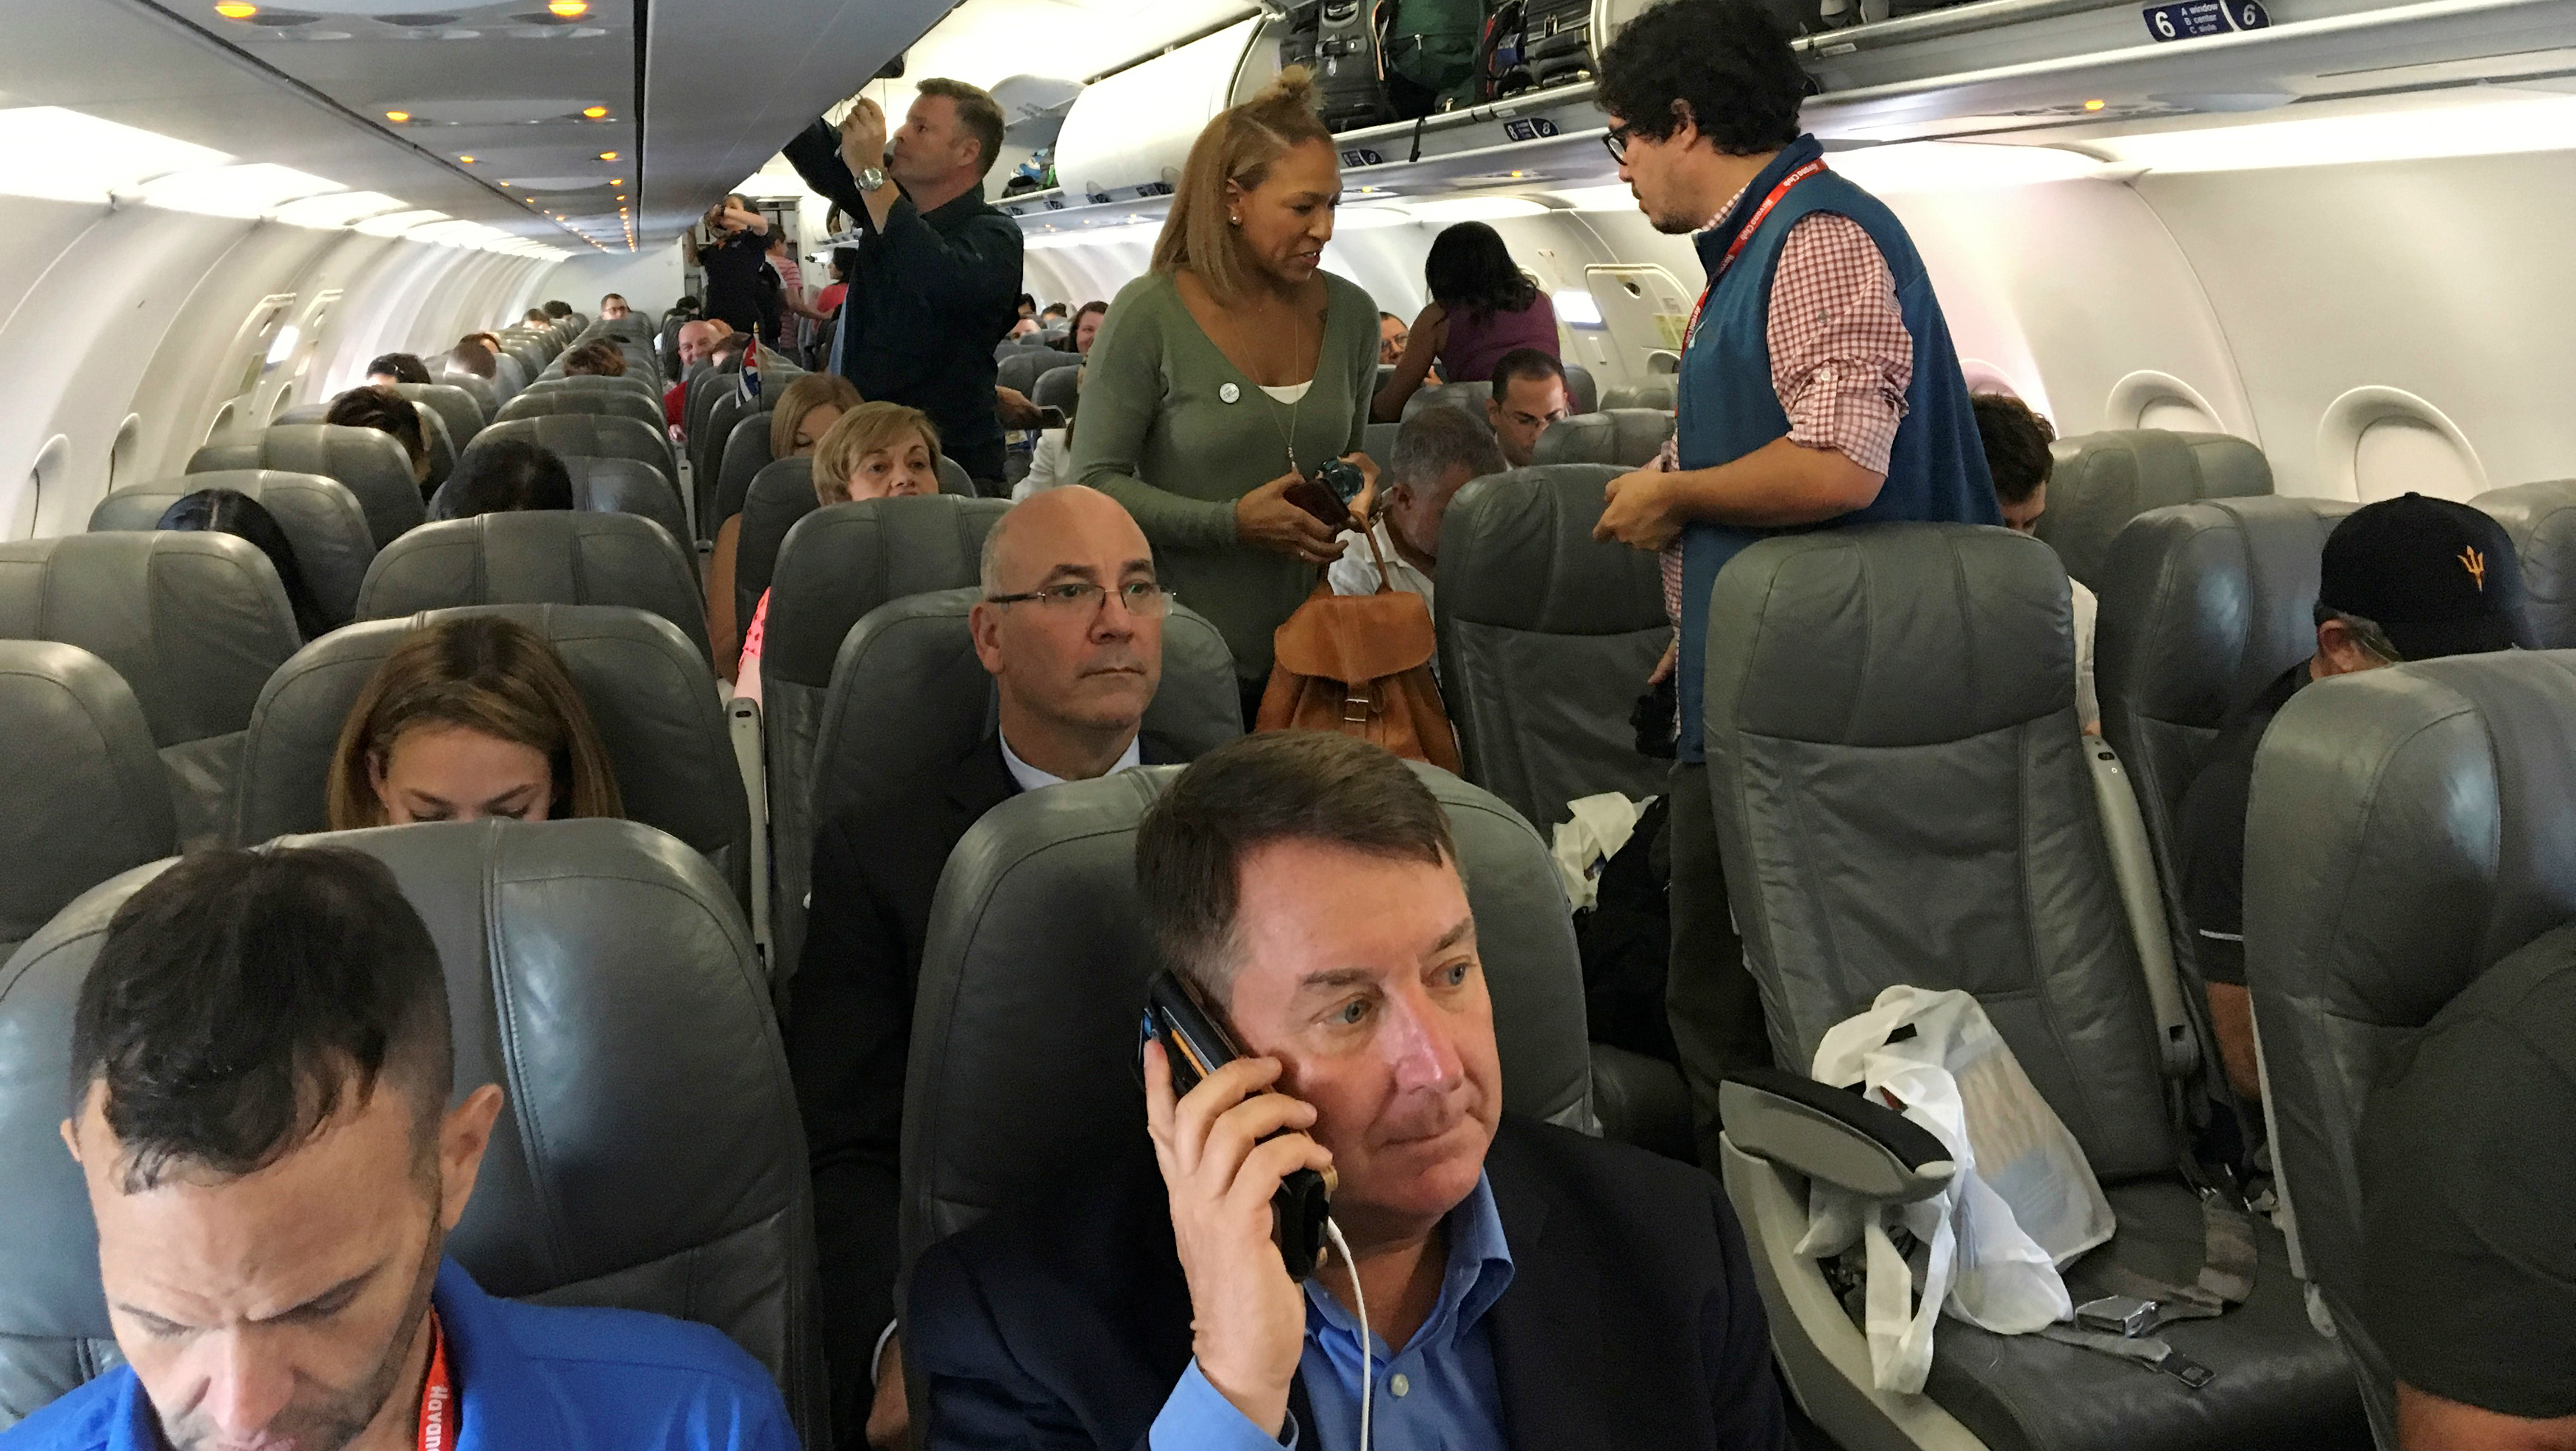 The Most Annoying Habits Of Airline Passengers Ranked